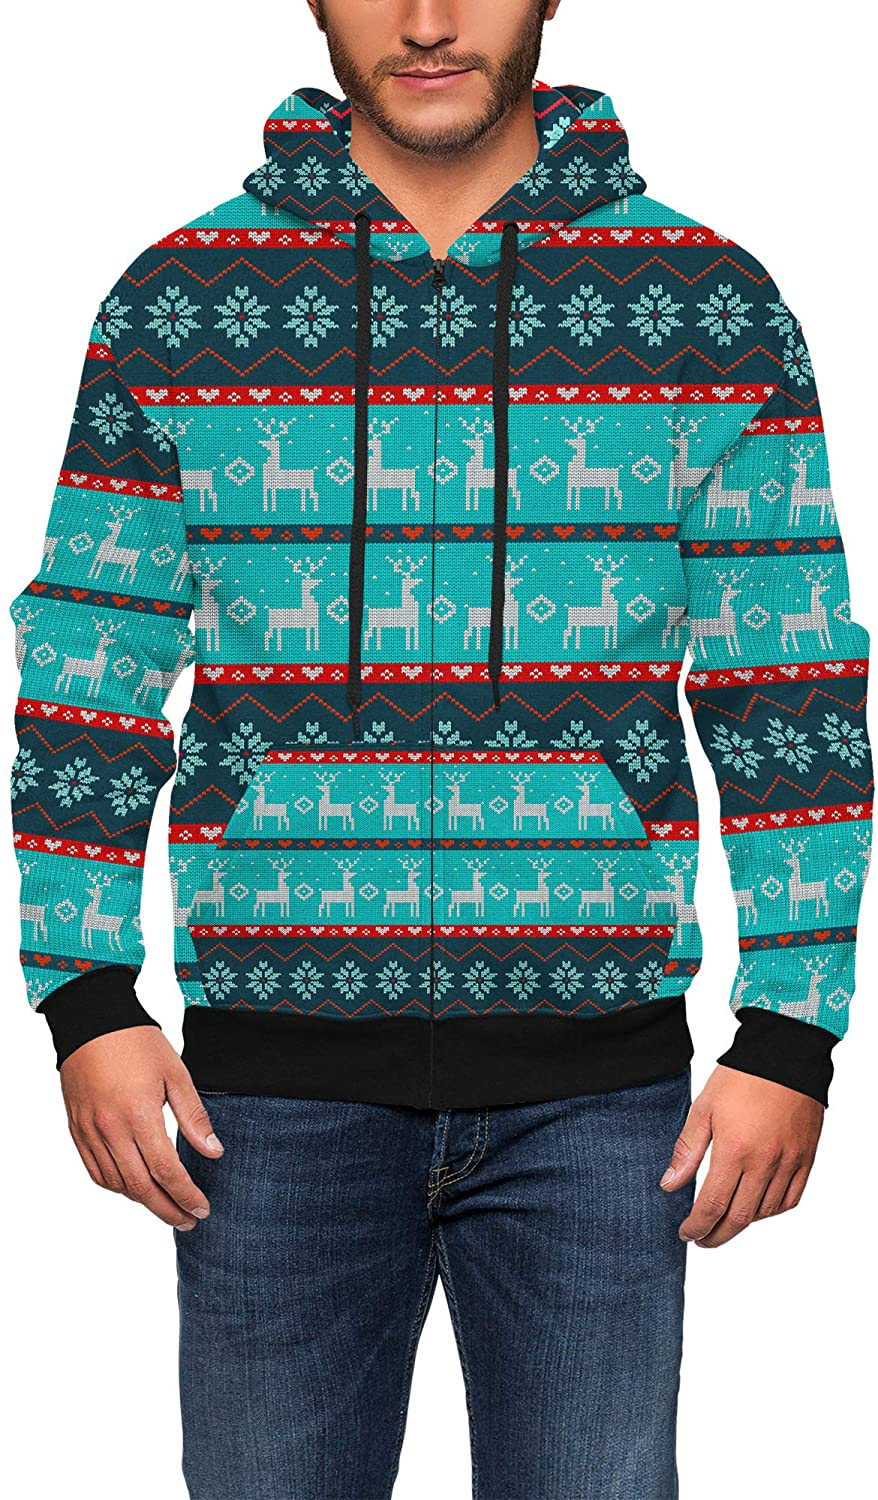 Mens Zip Up Hoodie - Ugly Christmas Reindeers Sweater Pattern